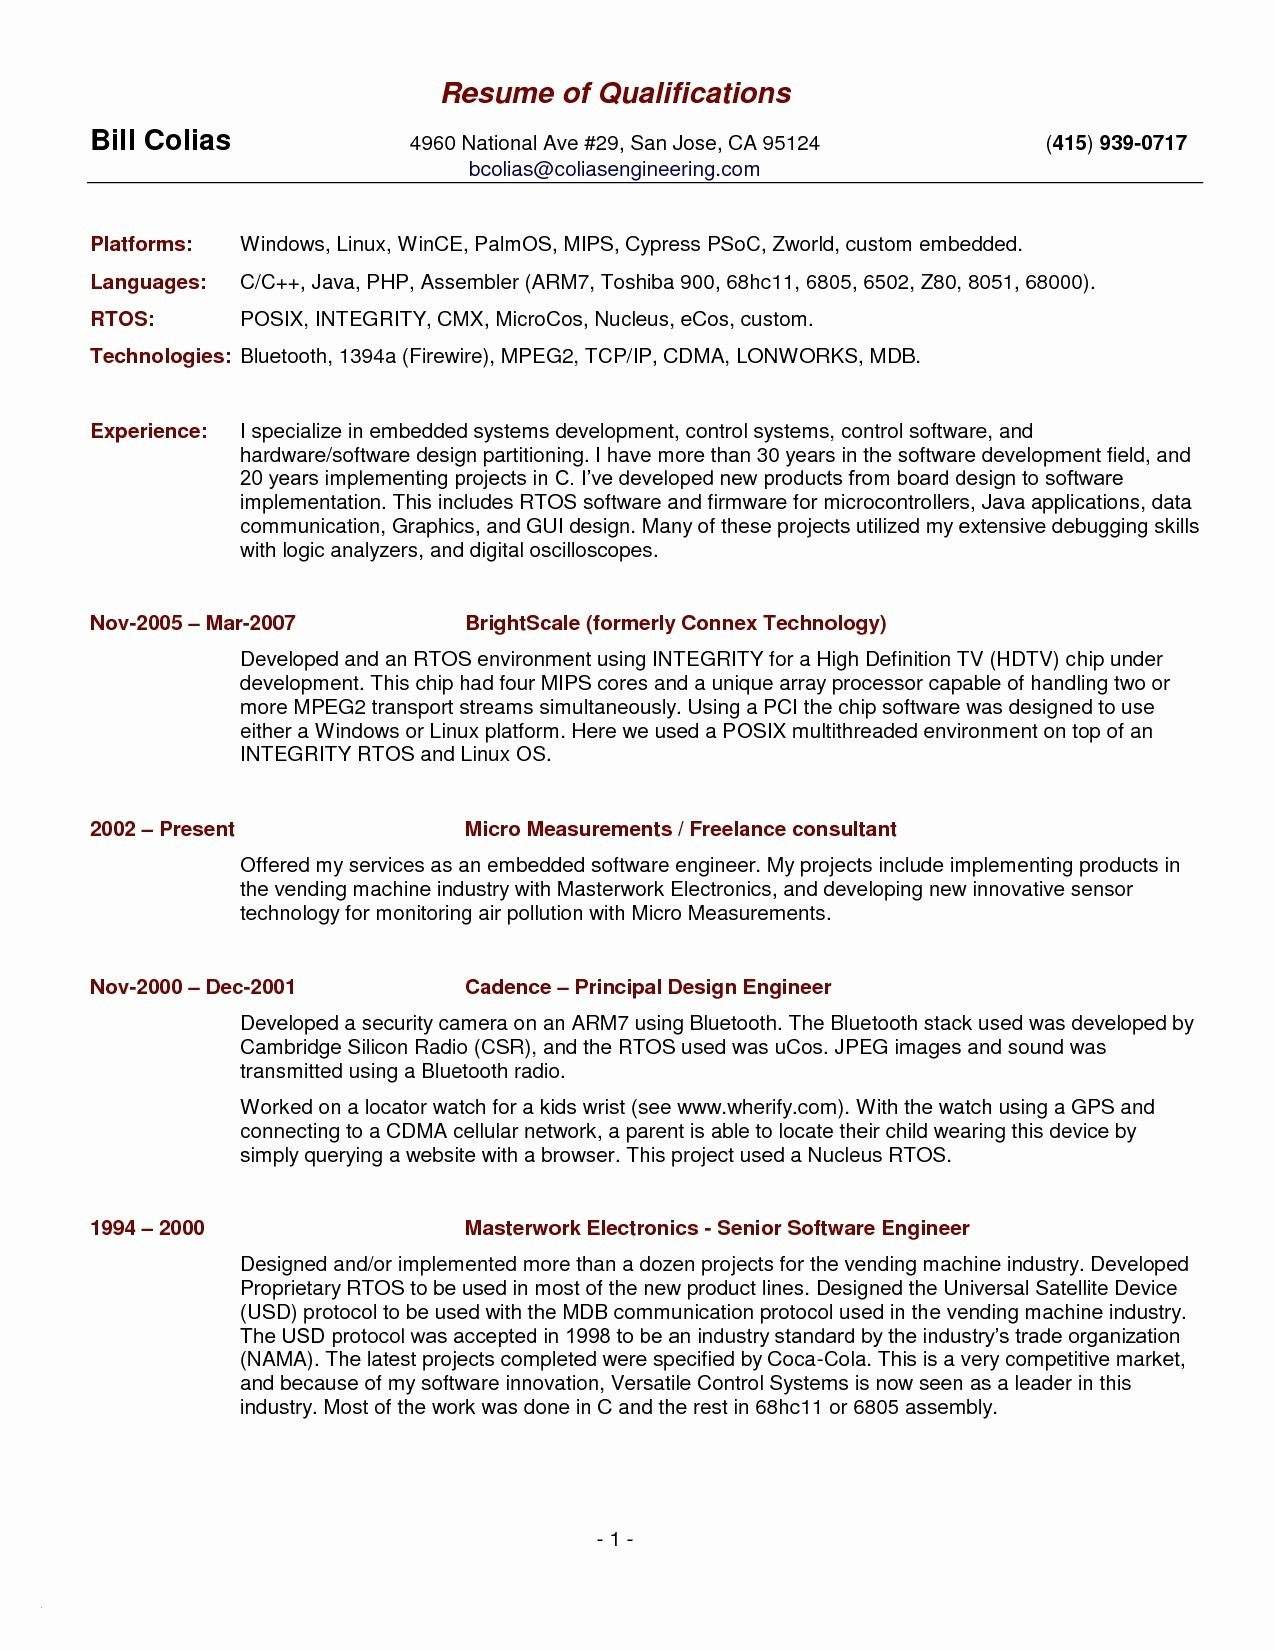 resume template 2018 free example-Resume Templates Pdf Free Inspirational Lovely Pr Resume Template Elegant Dictionary Template 0d Archives 5-g